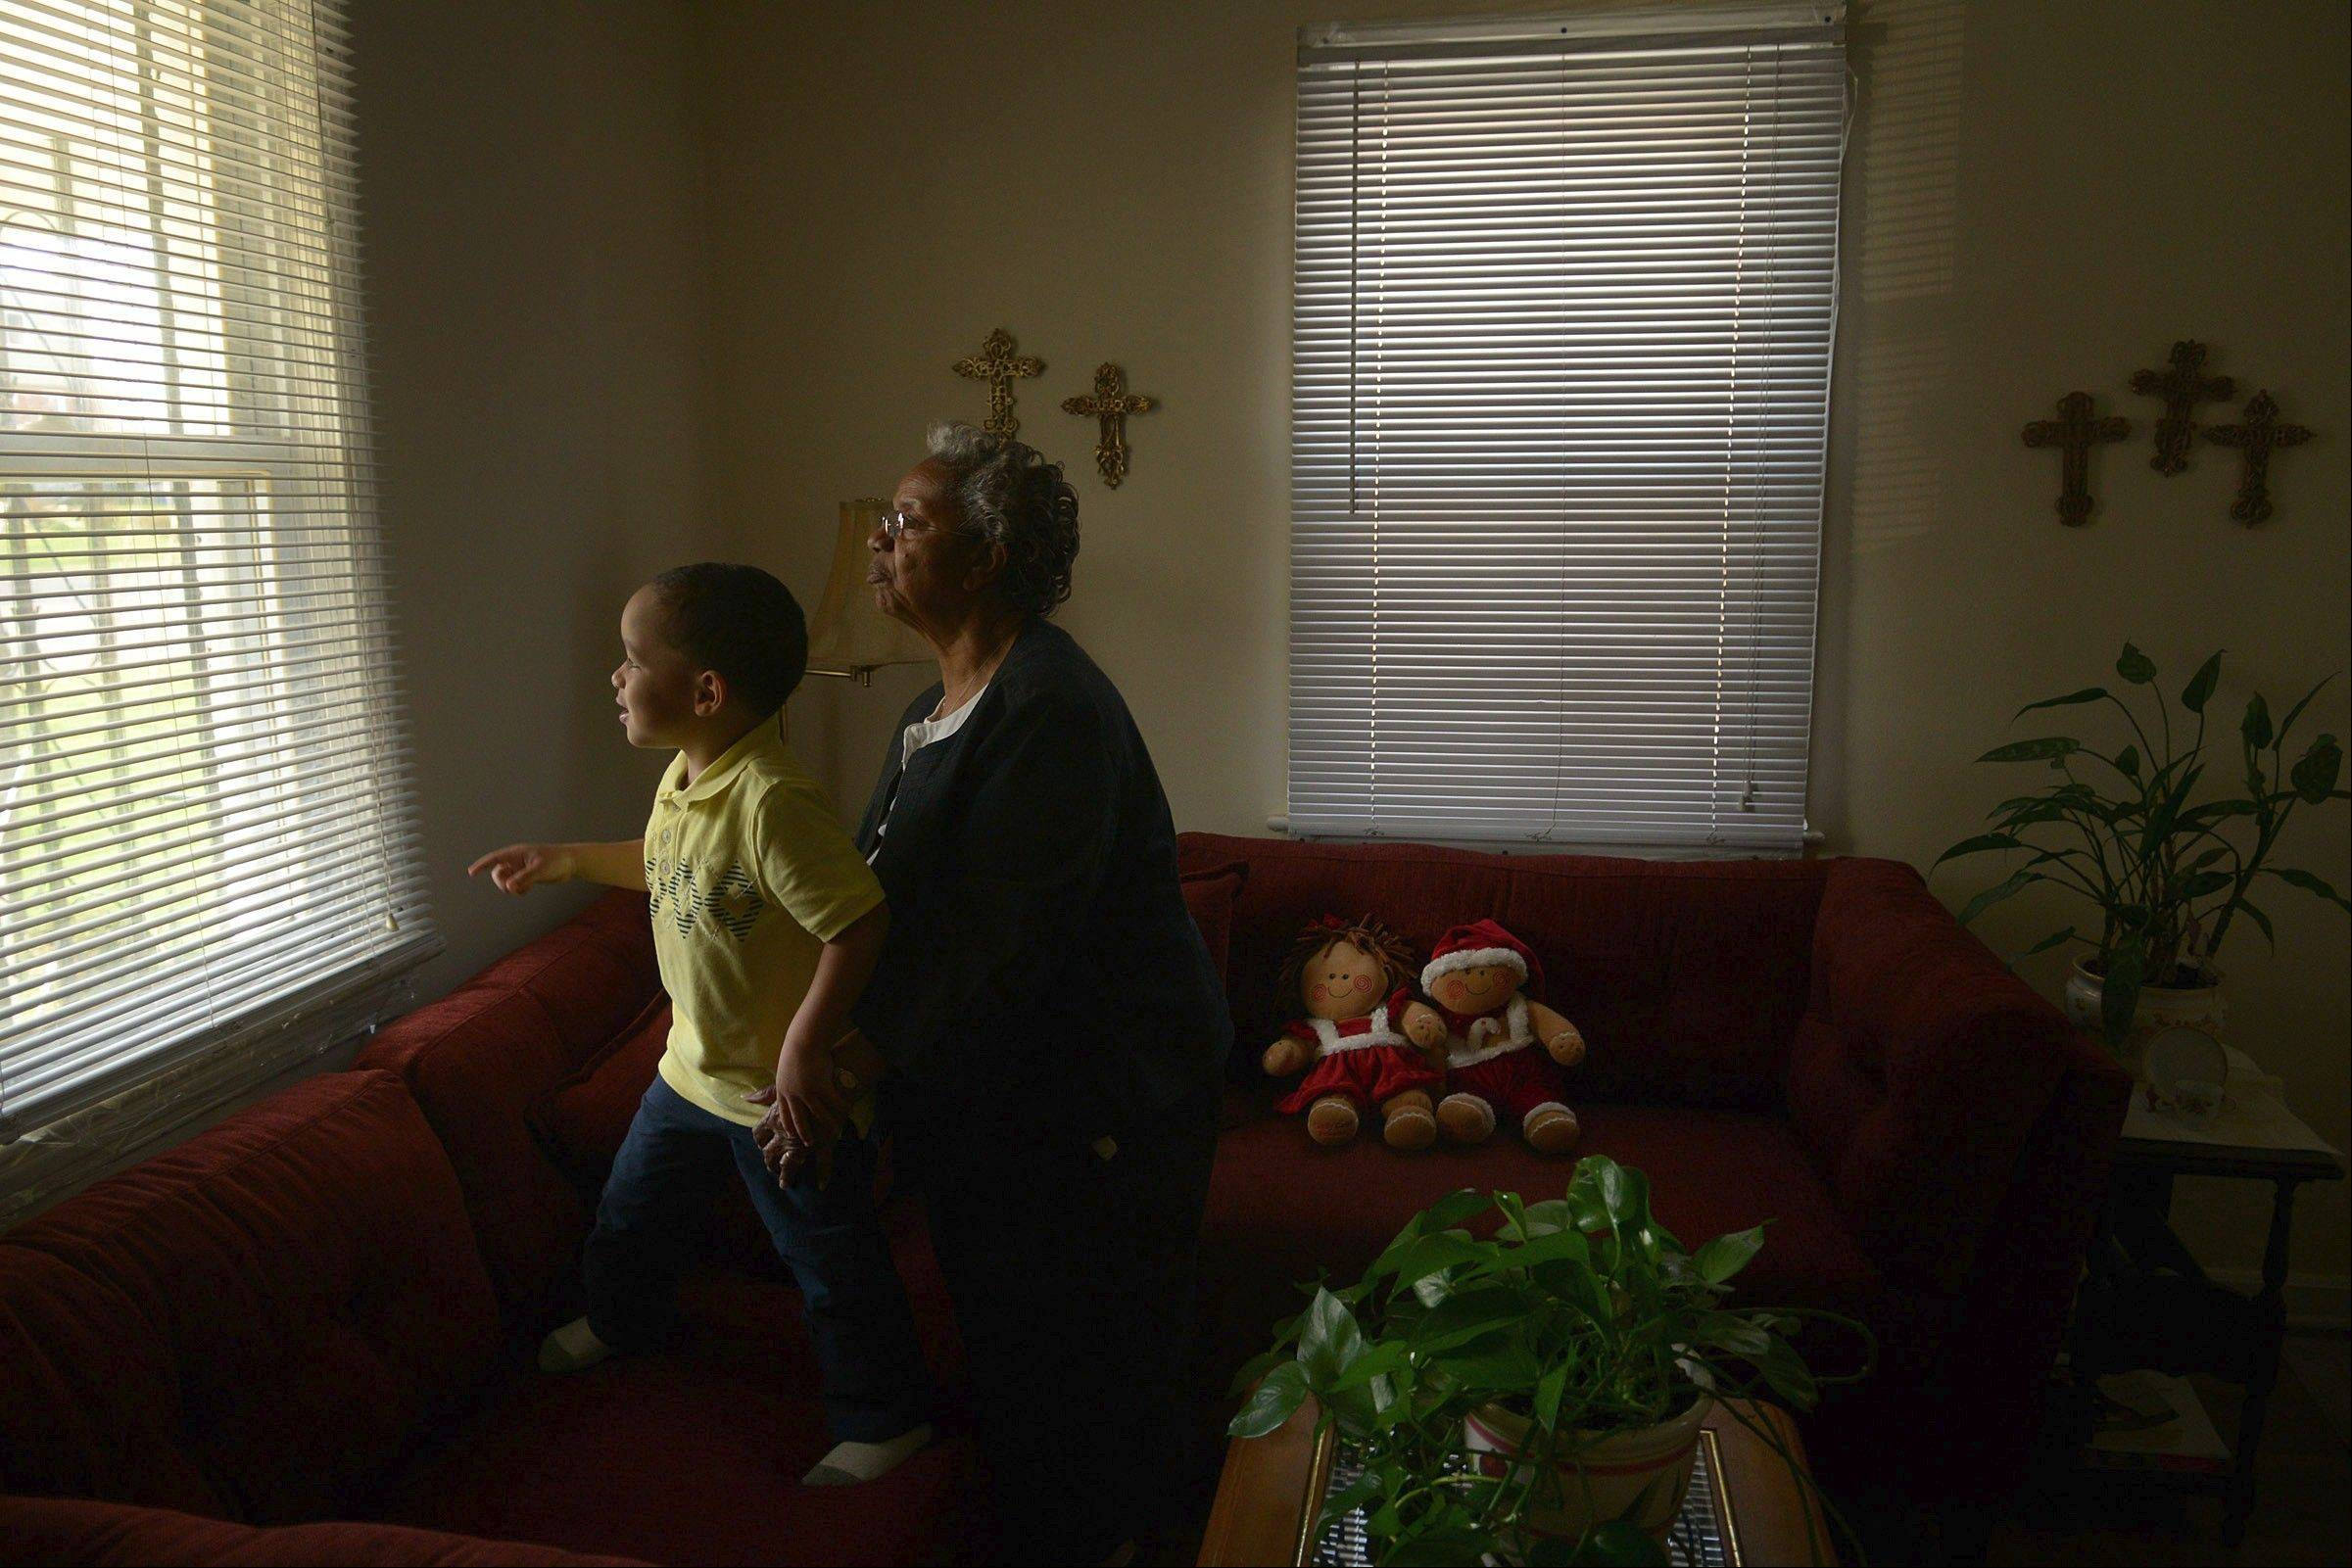 Erma Taylor says her great-grandson, Juel Taylor Russ, who lives with her in her Falls Church, Va., home, developed allergies because of mold in the carpet.